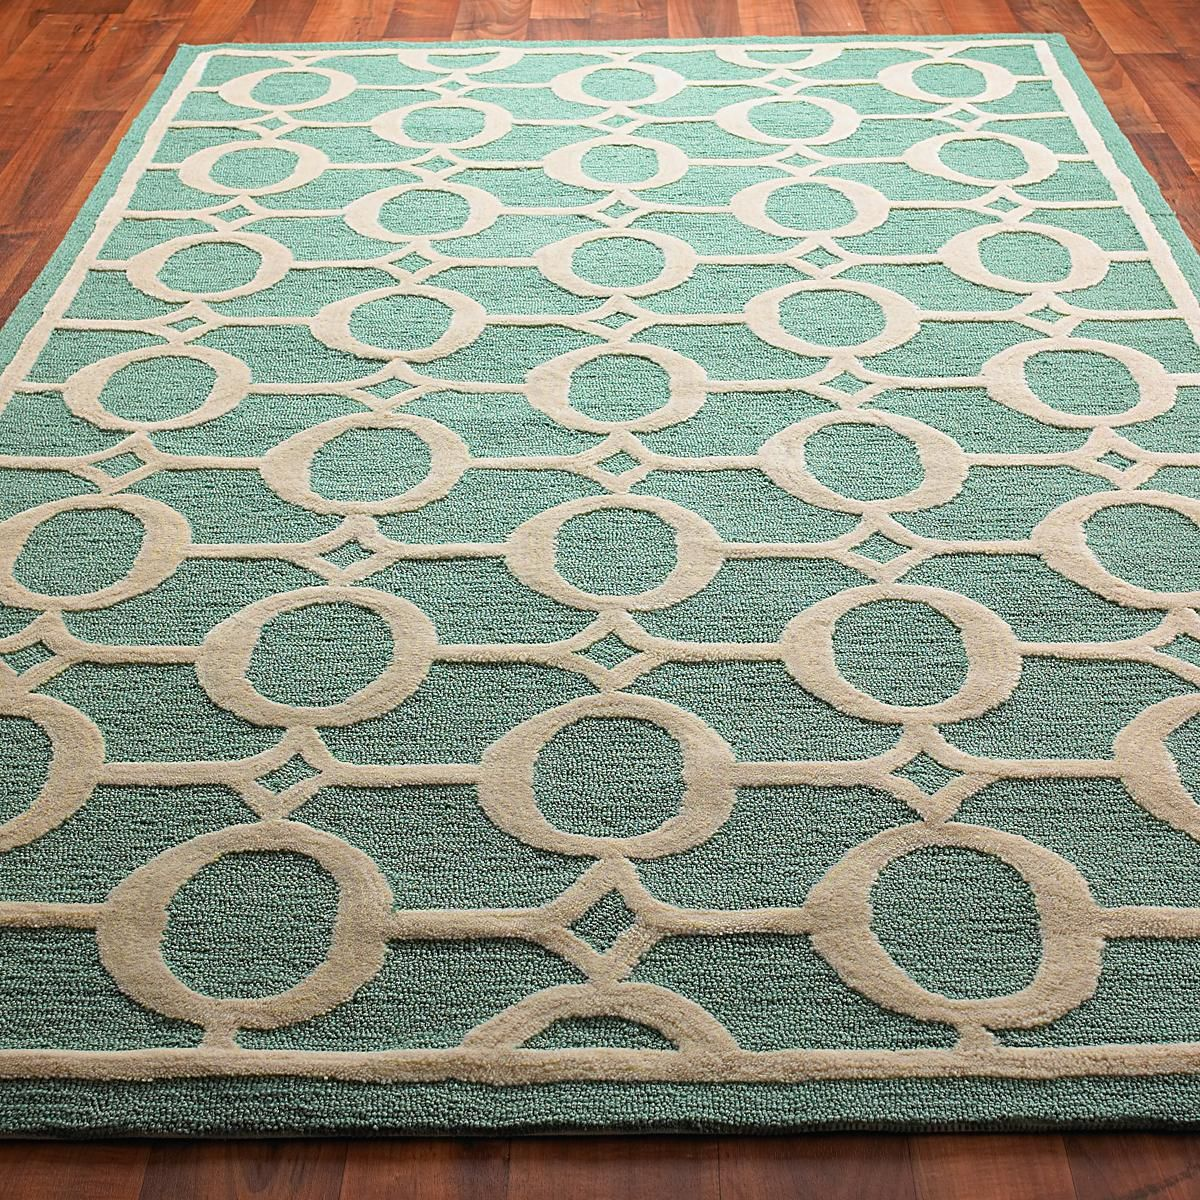 Cheap Do It Yourself Home Decor: Indoor / Outdoor Carved Ellipse Rug